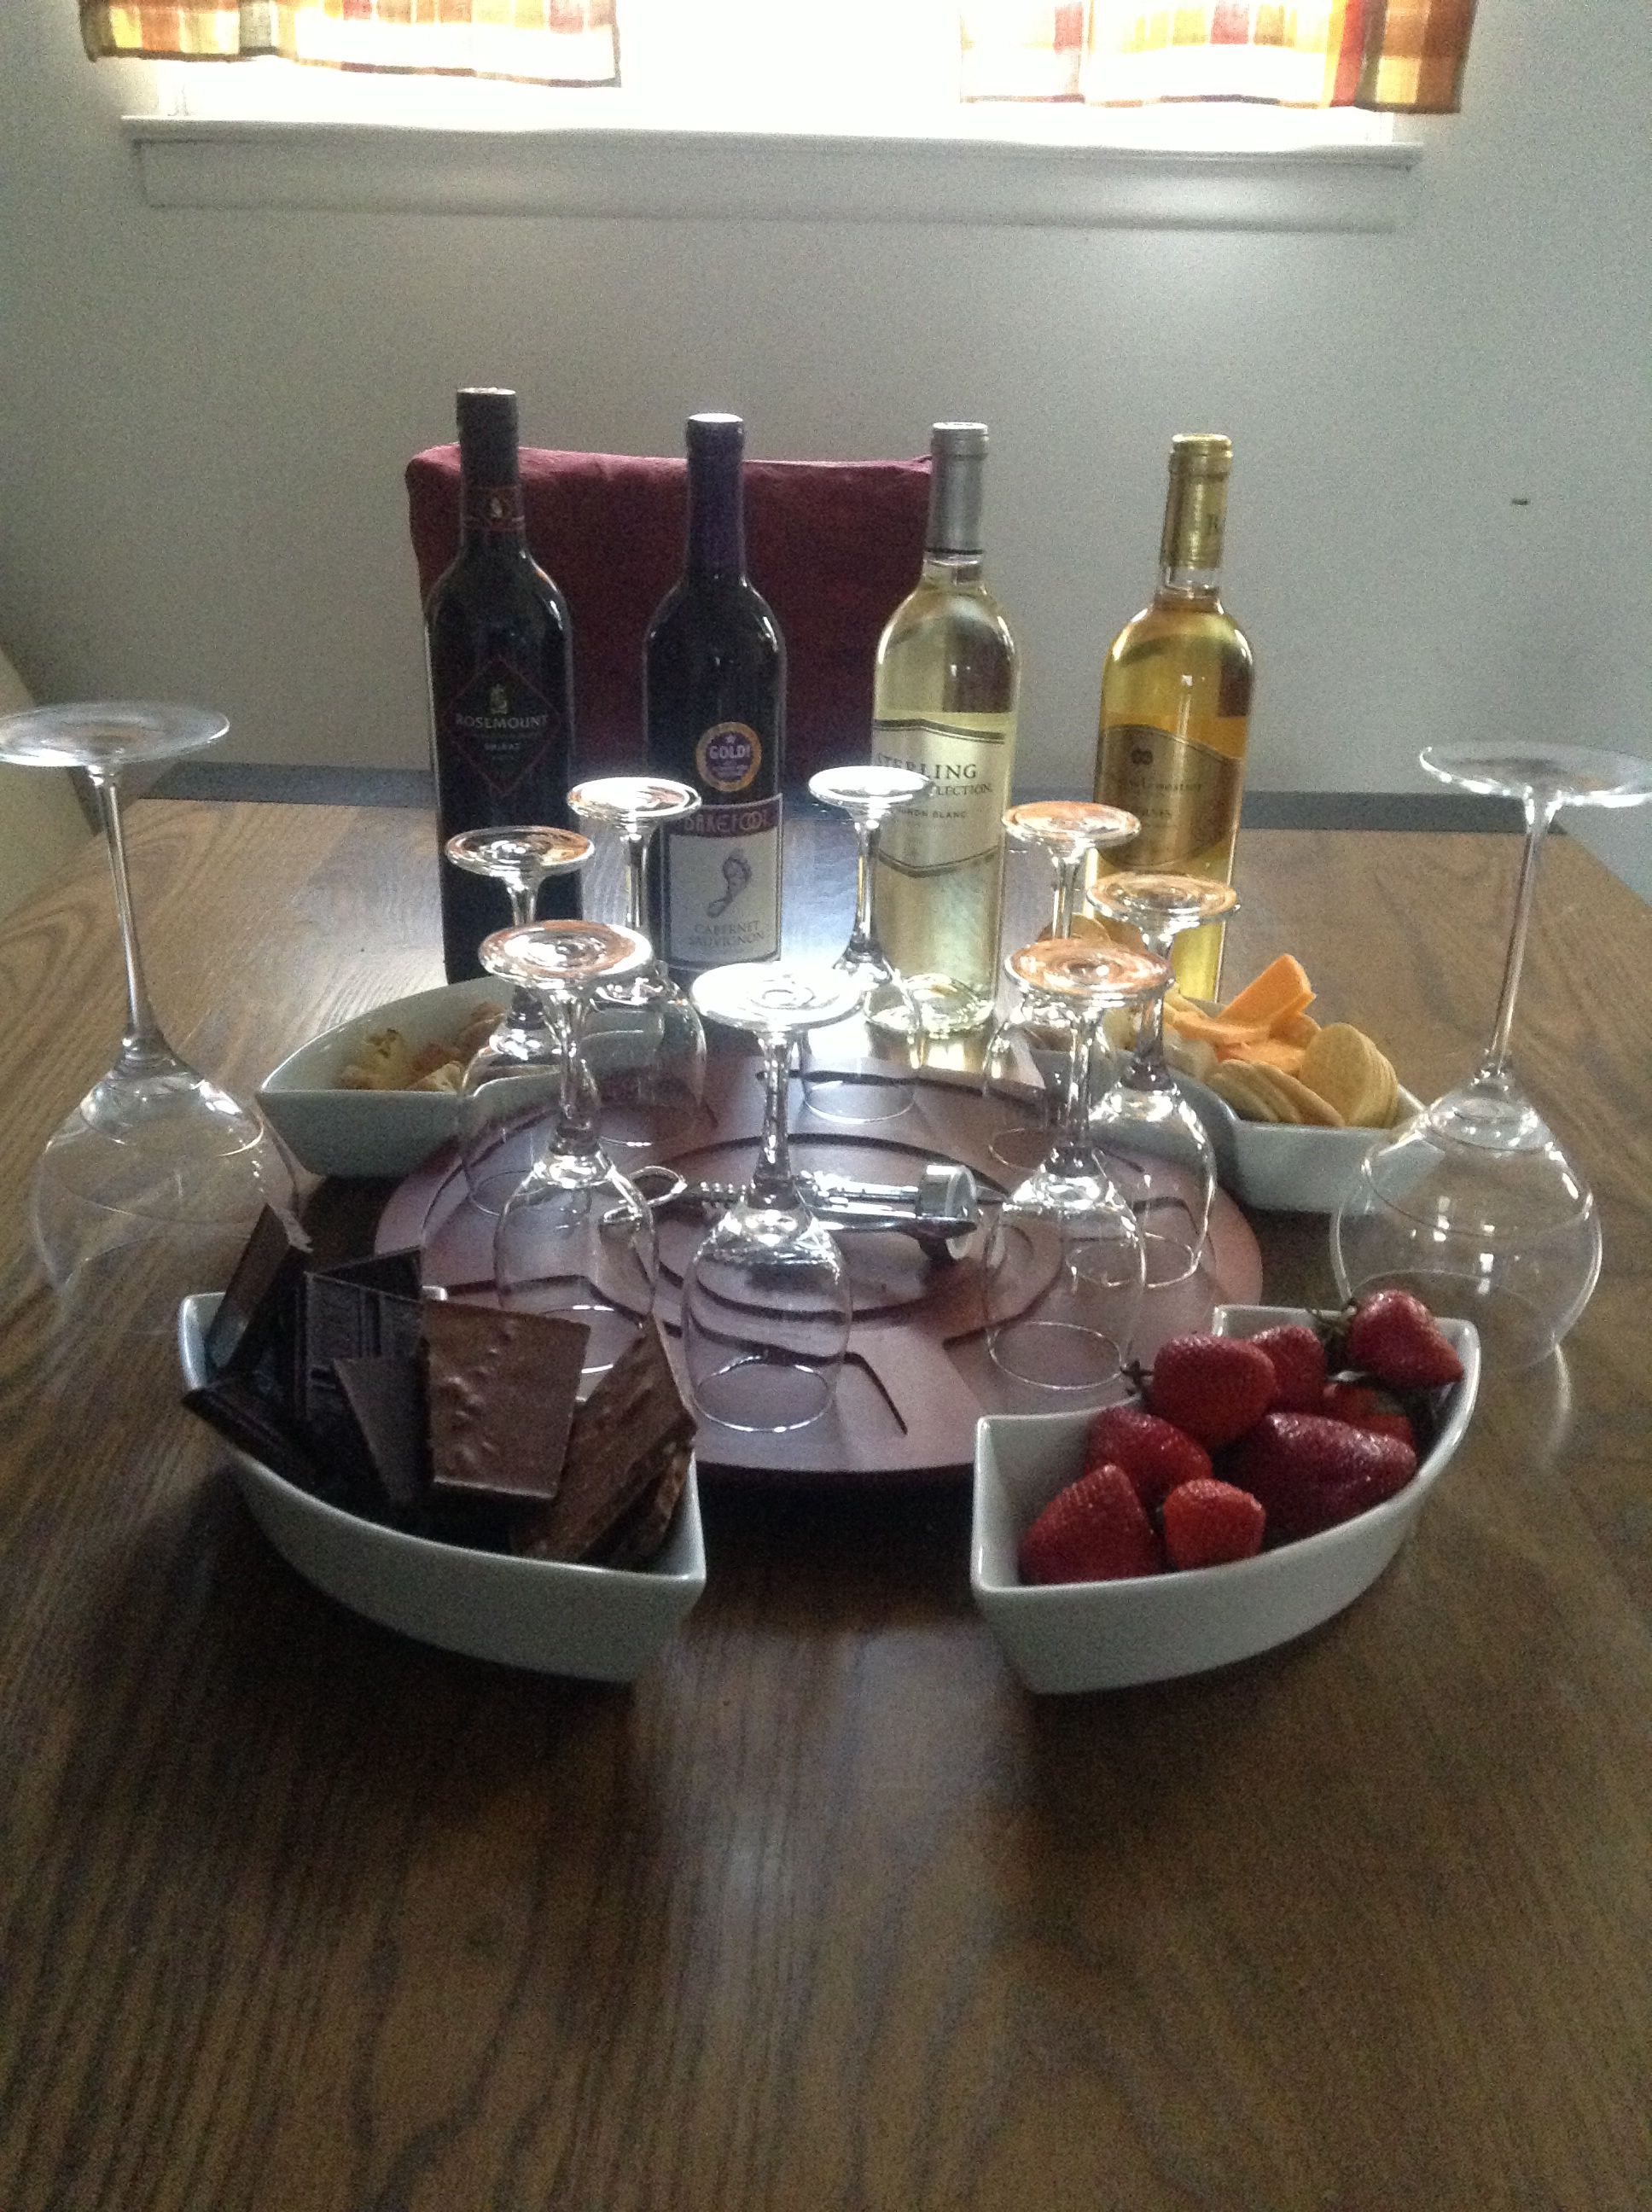 DIY Wine tasting and food pairing for a stay at home date night